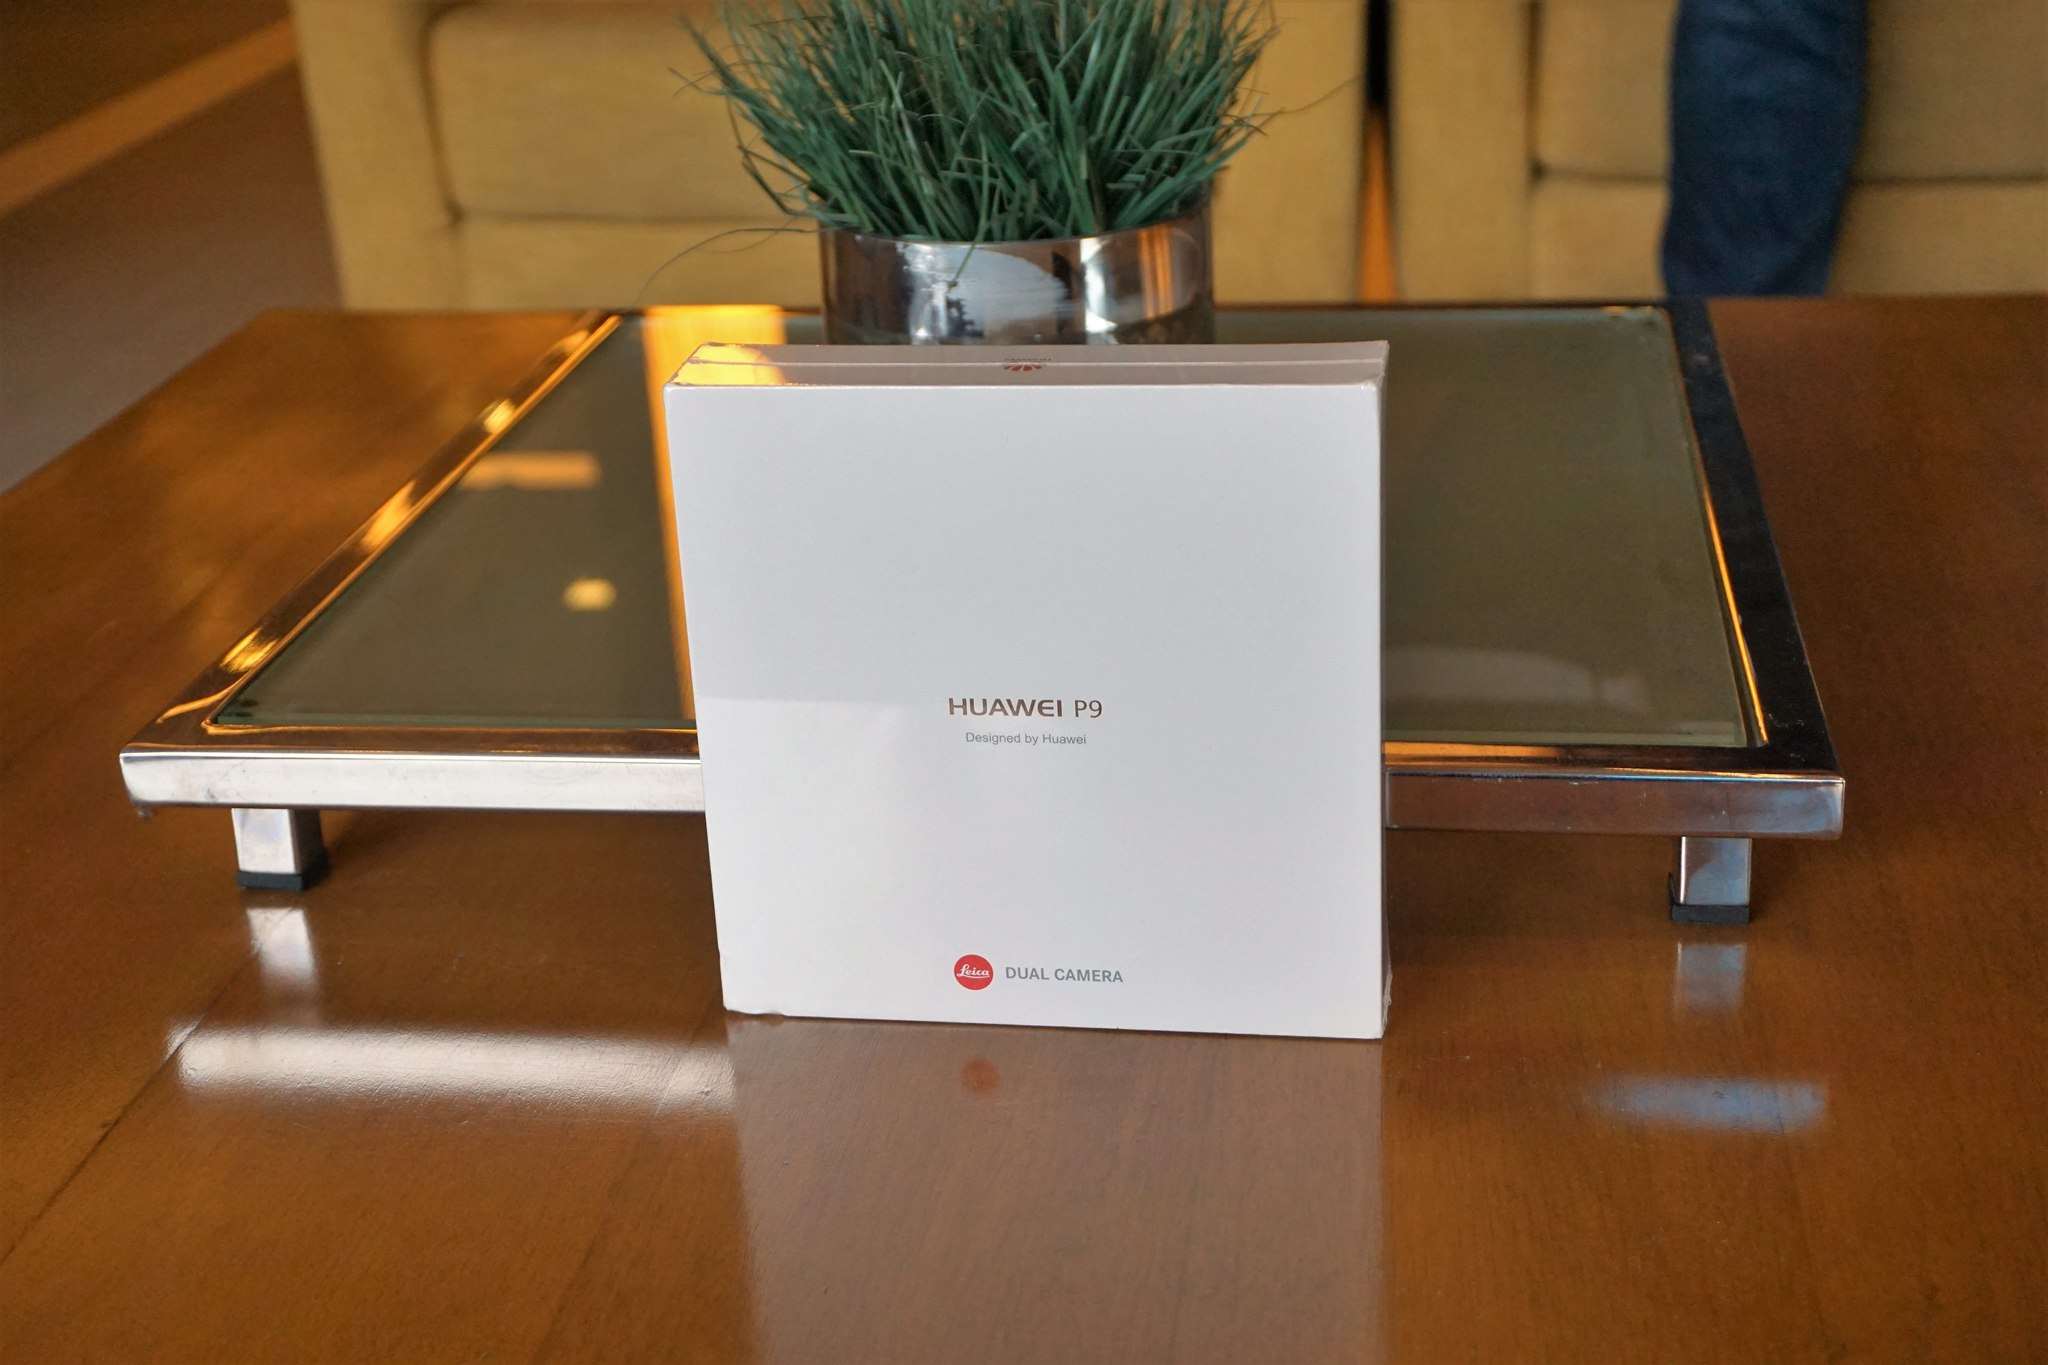 Huawei P9 packaging